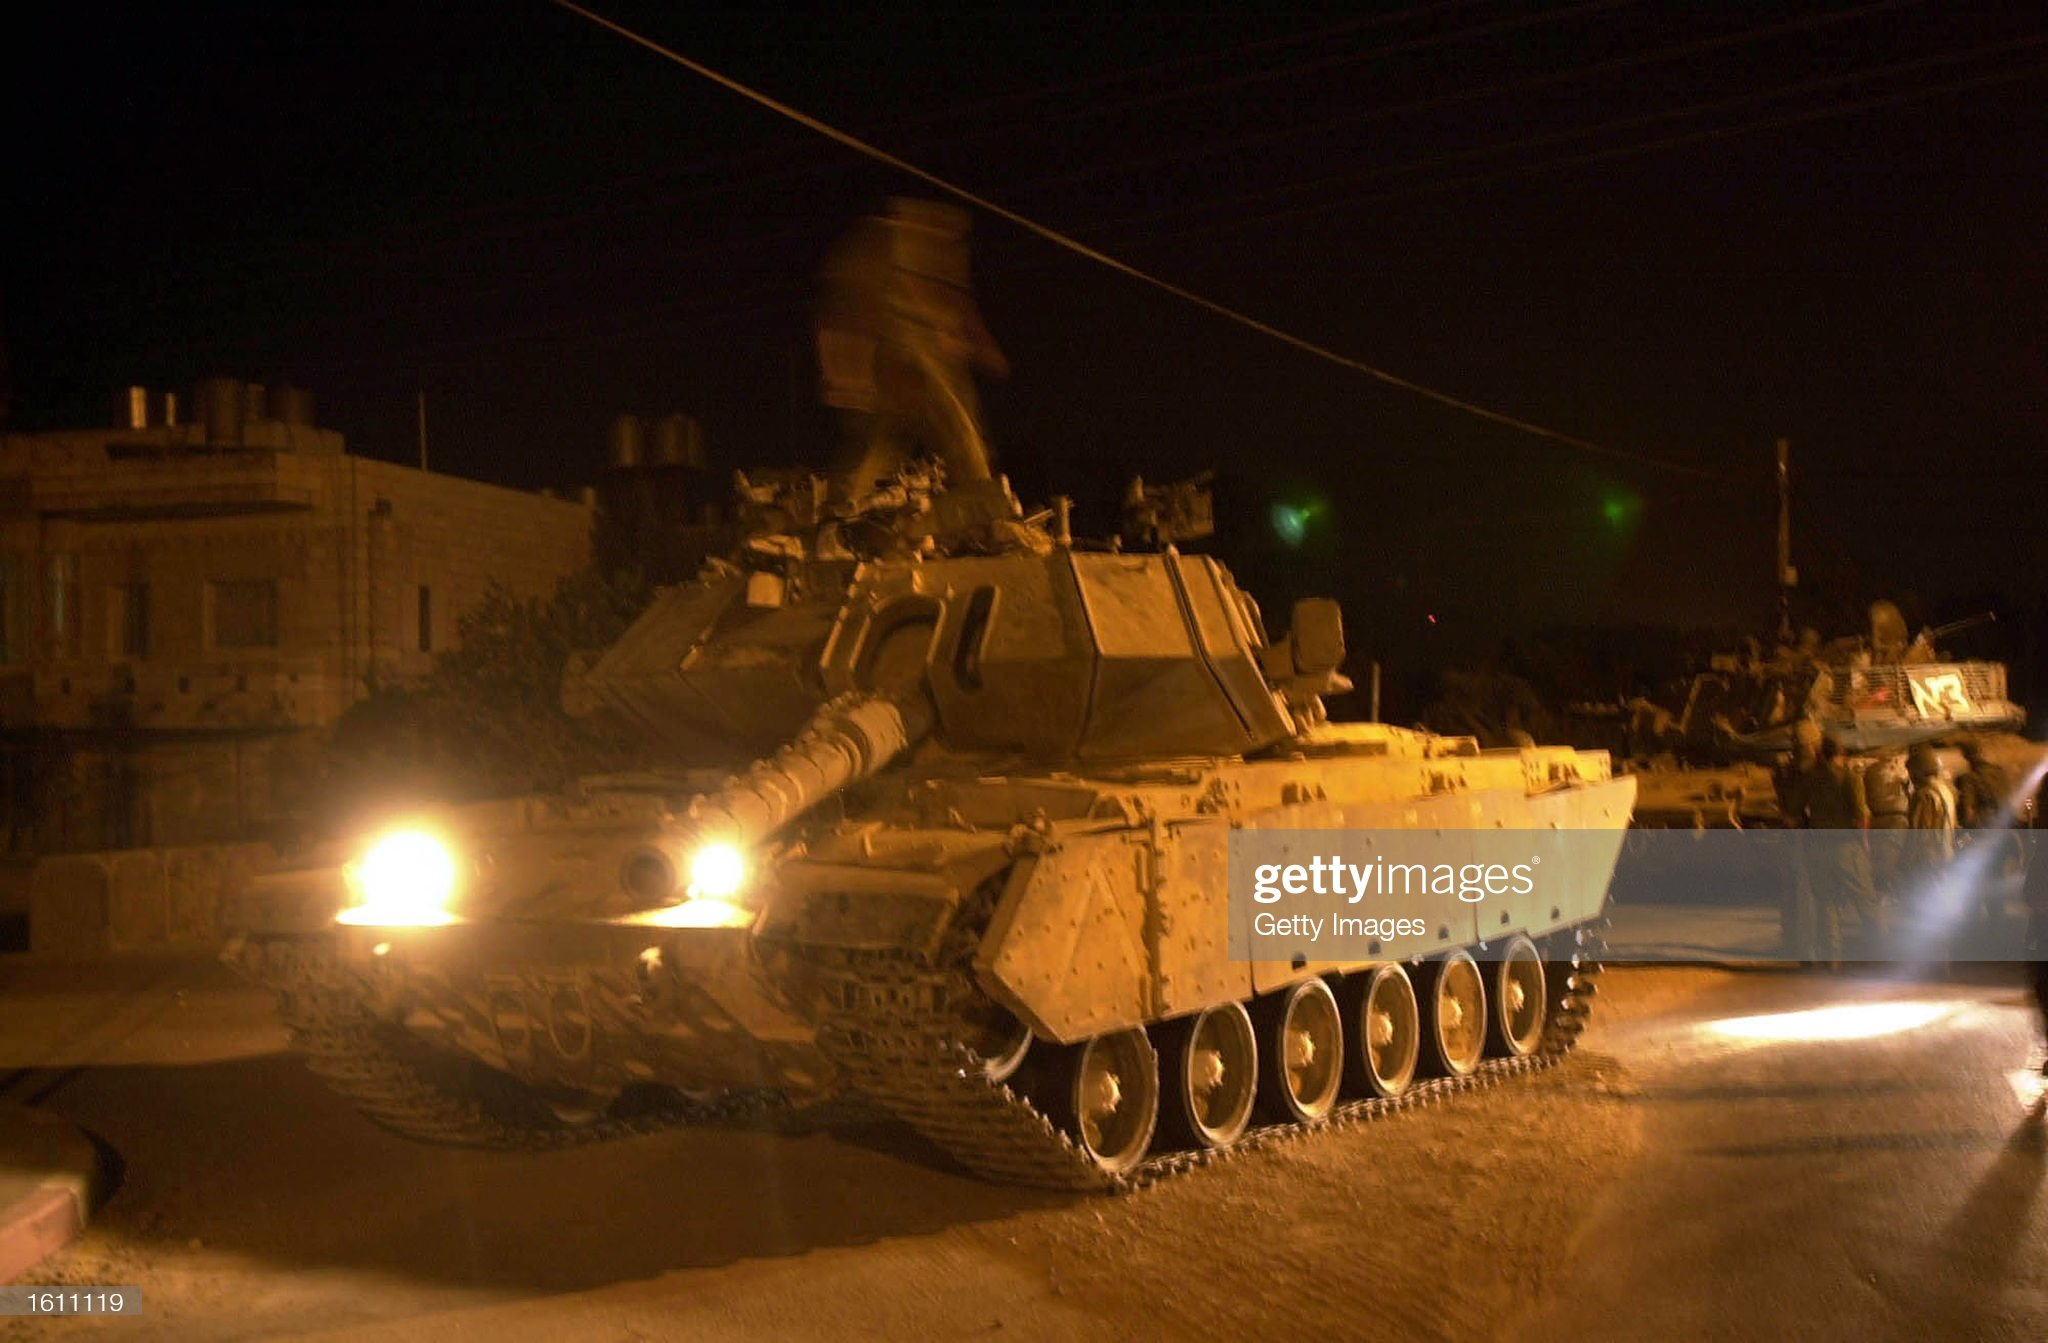 https://media.gettyimages.com/photos/israeli-tanks-stand-at-the-entrance-of-the-palestinian-town-of-beit-picture-id1611119?s=2048x2048